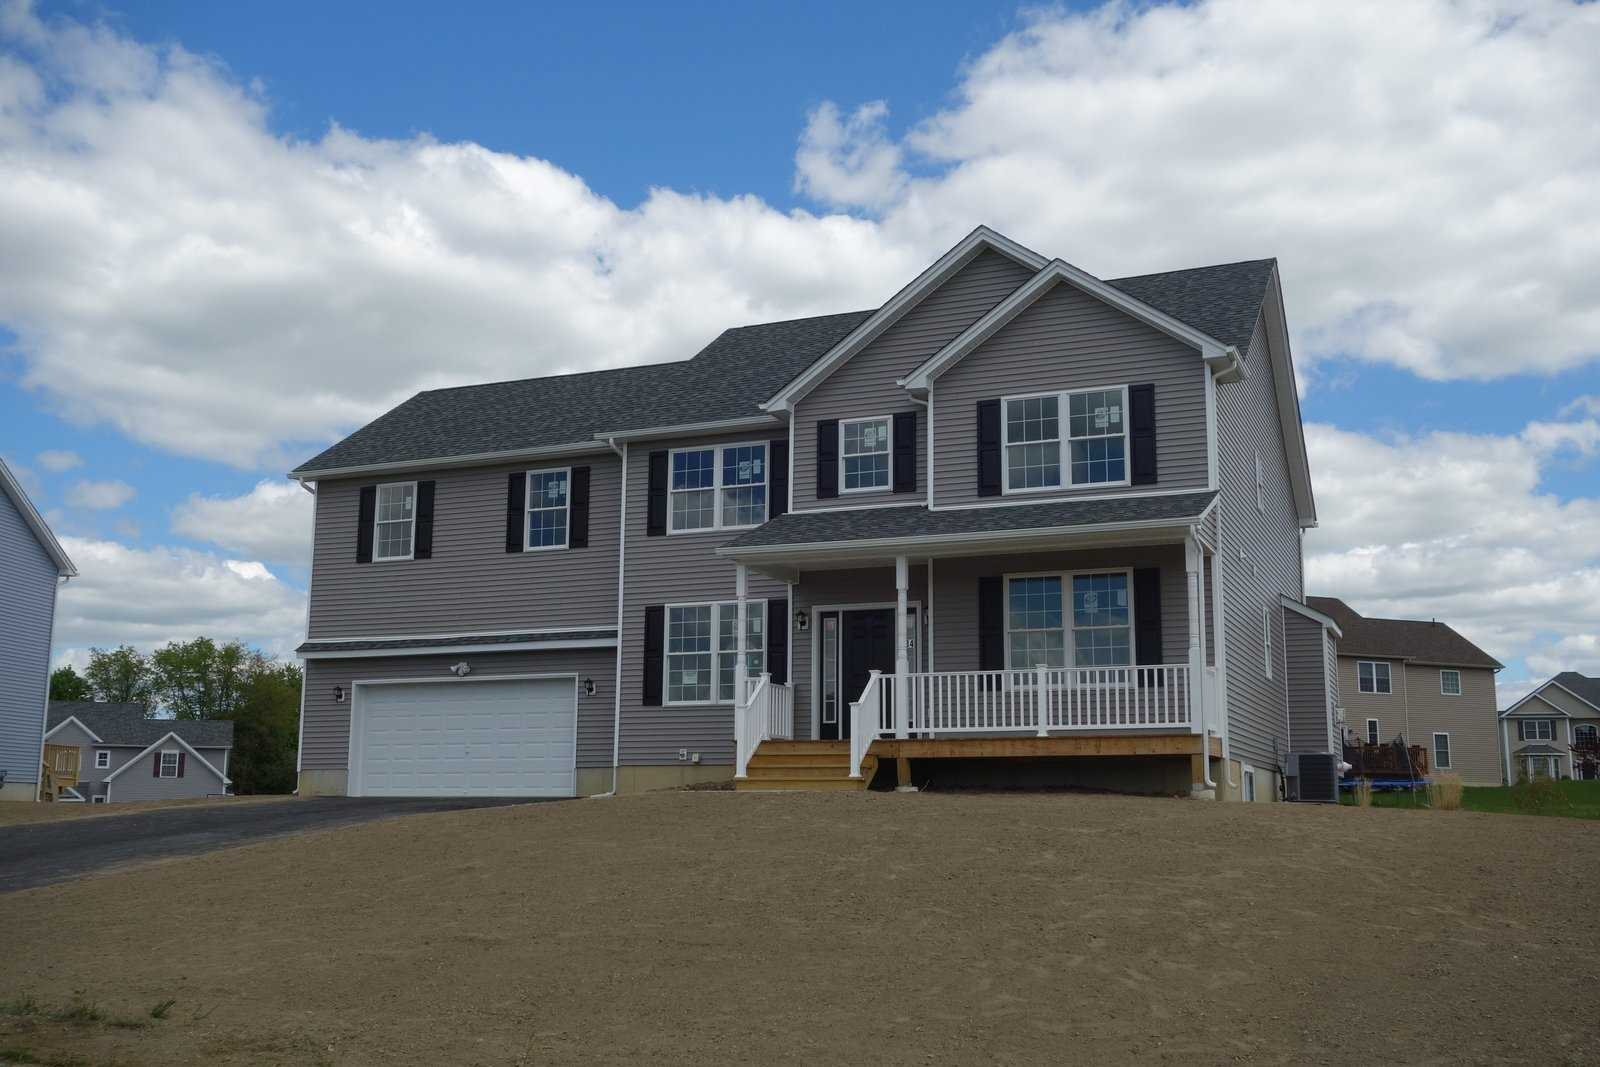 Single Family Home for Sale at 148 STRATFORD LOT 7 Drive 148 STRATFORD LOT 7 Drive Poughkeepsie, New York 12603 United States